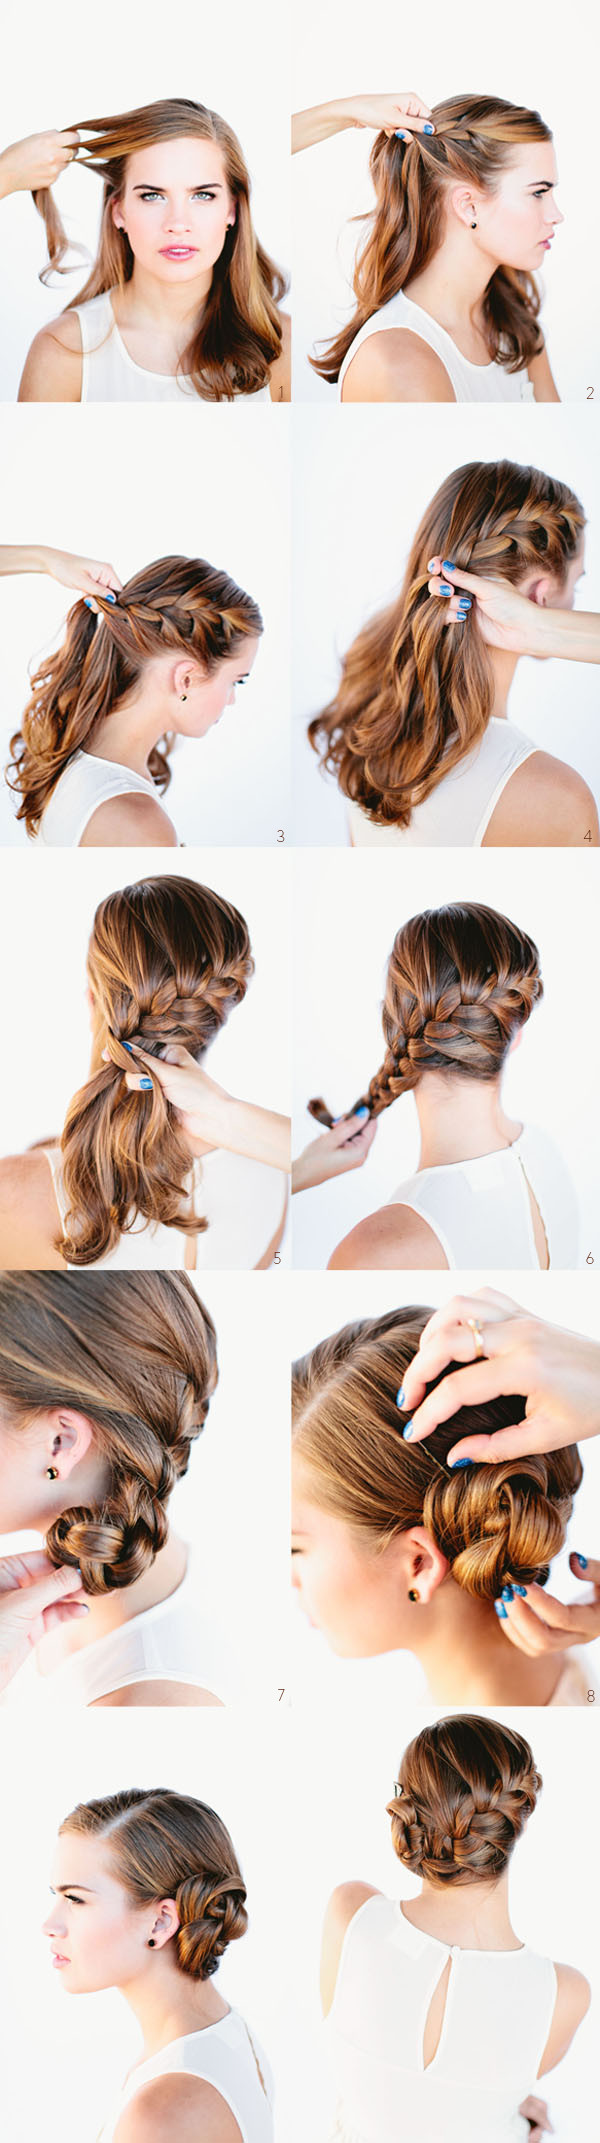 Best ideas about Diy Haircuts For Long Hair . Save or Pin 101 Easy DIY Hairstyles for Medium and Long Hair to snatch Now.